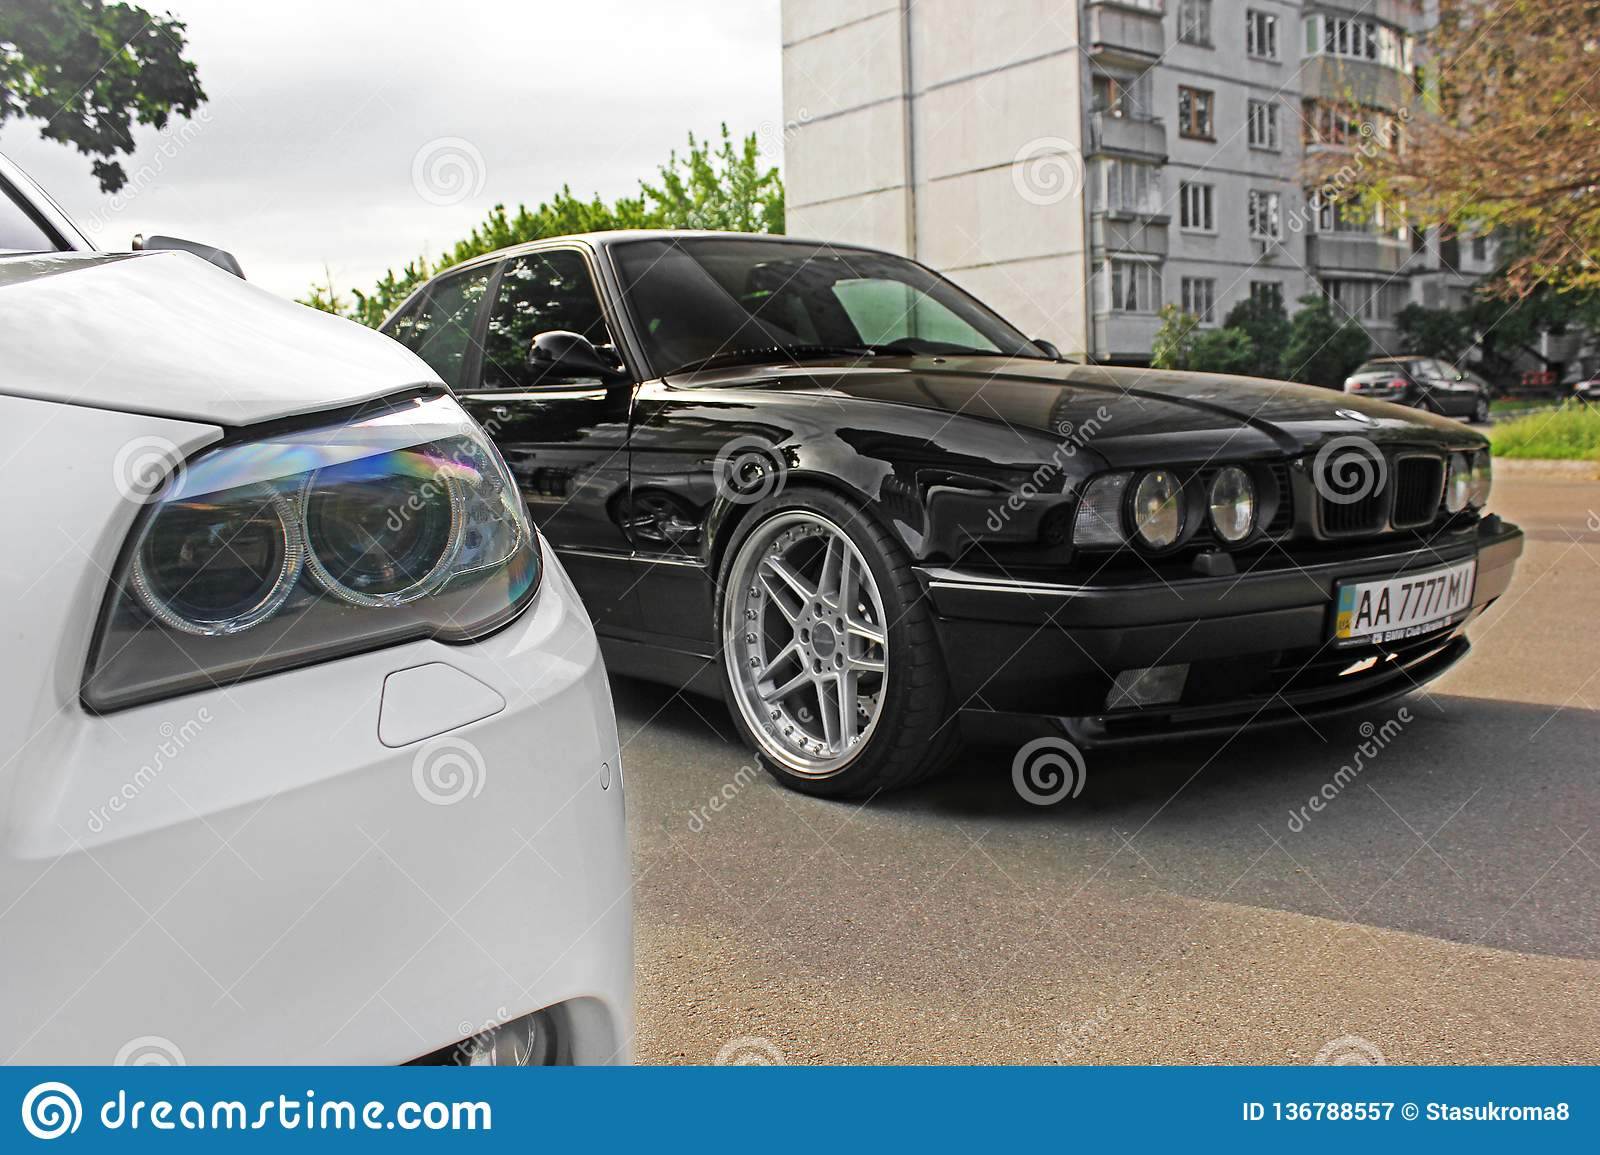 Kharkov Ukraine Autumn September 2017 Combo Bmw Two Bmw M5 Black And White Bmw M5 F10 And M5 E34 In The City Editorial Photography Image Of City Concept 136788557